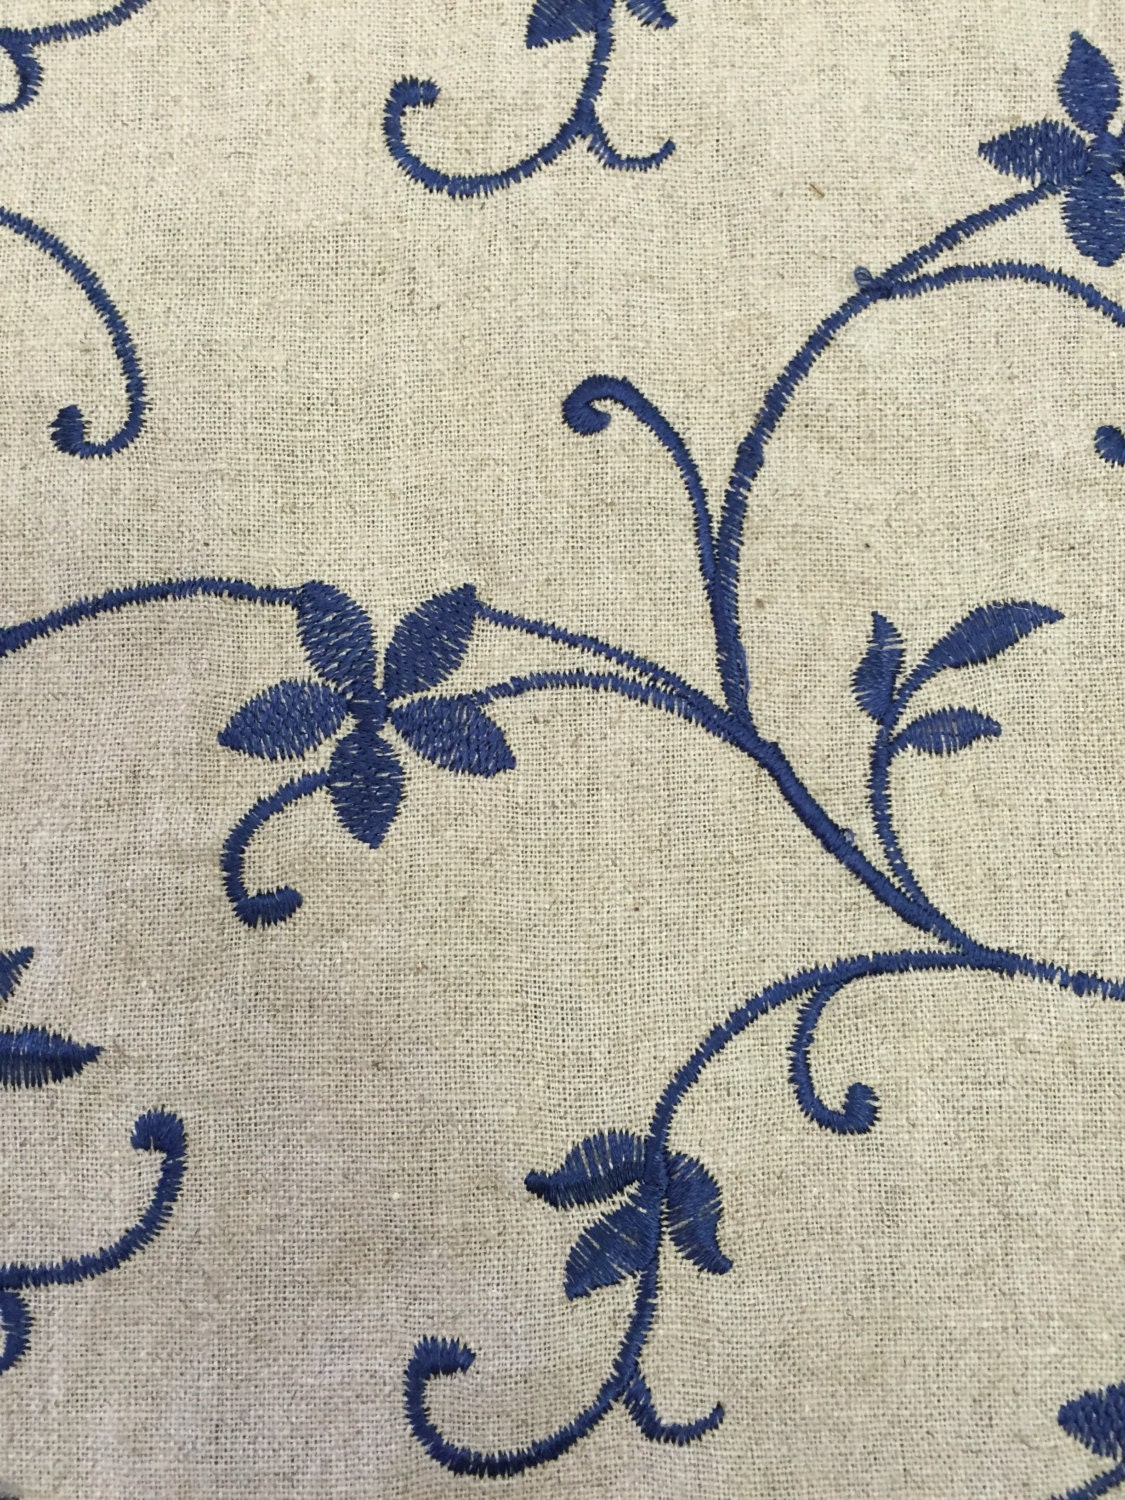 Navy embroidered vining floral fabric upholstery